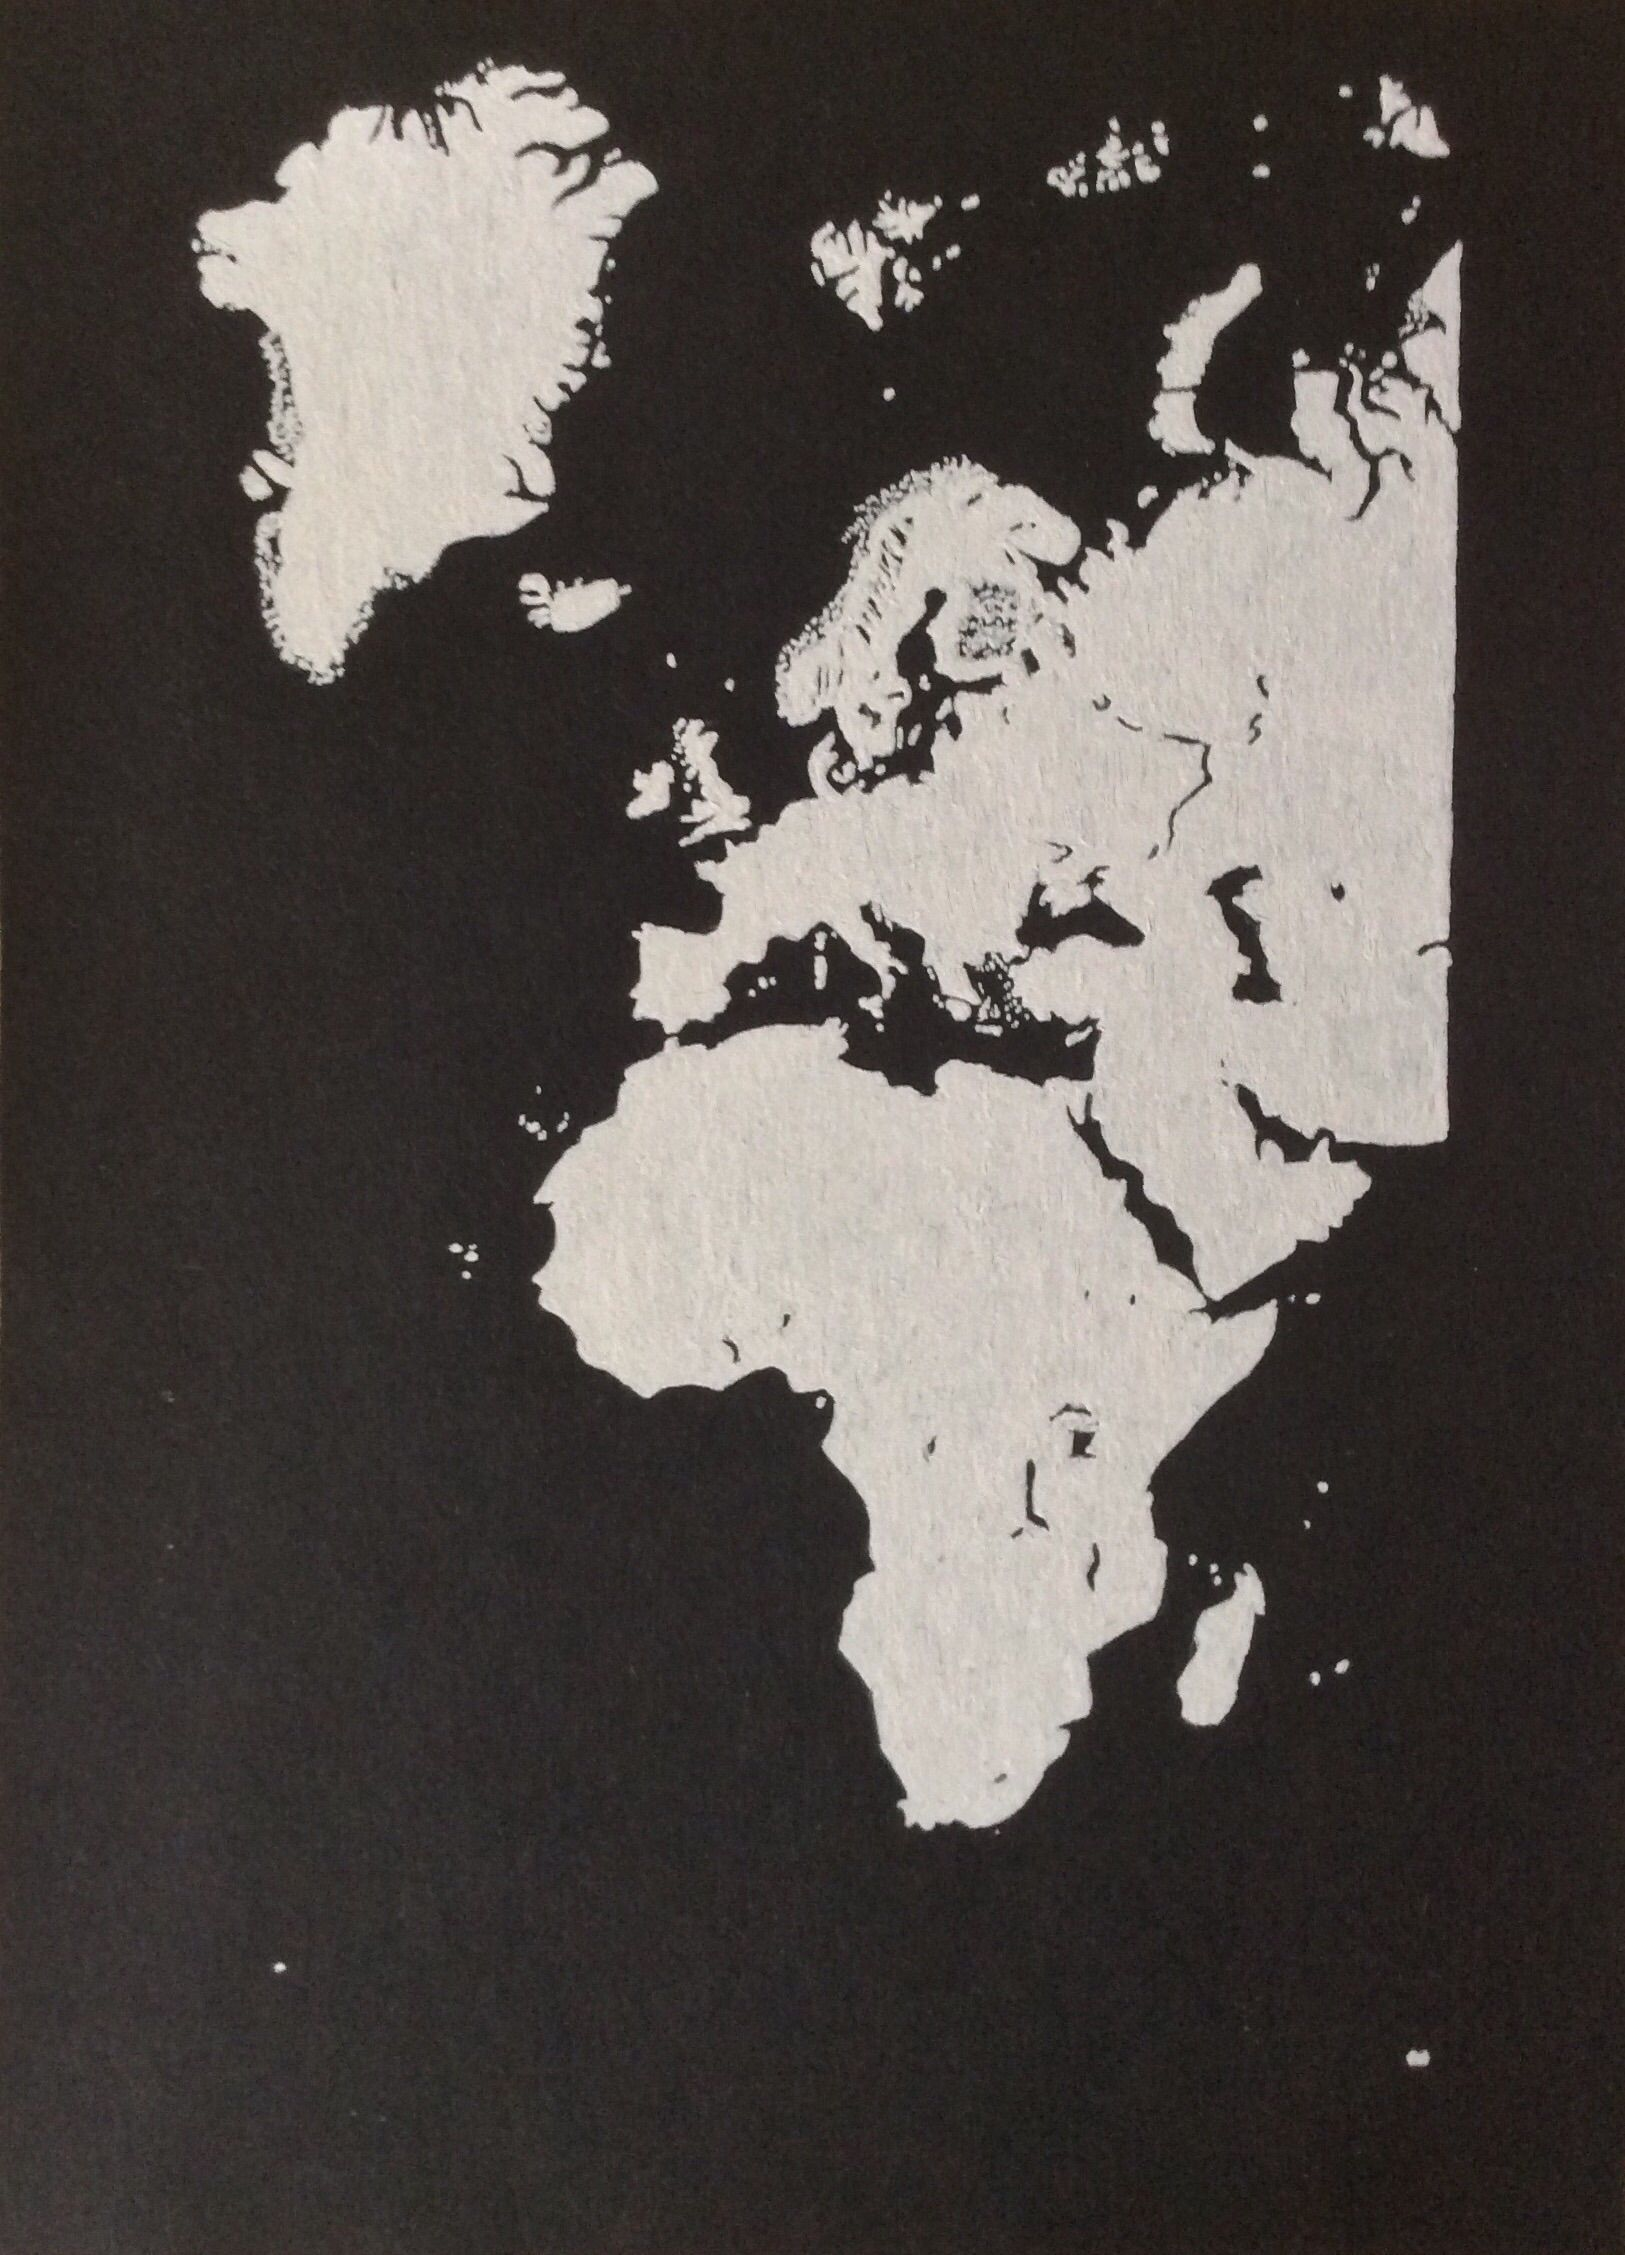 Europe and Africa White gel pen